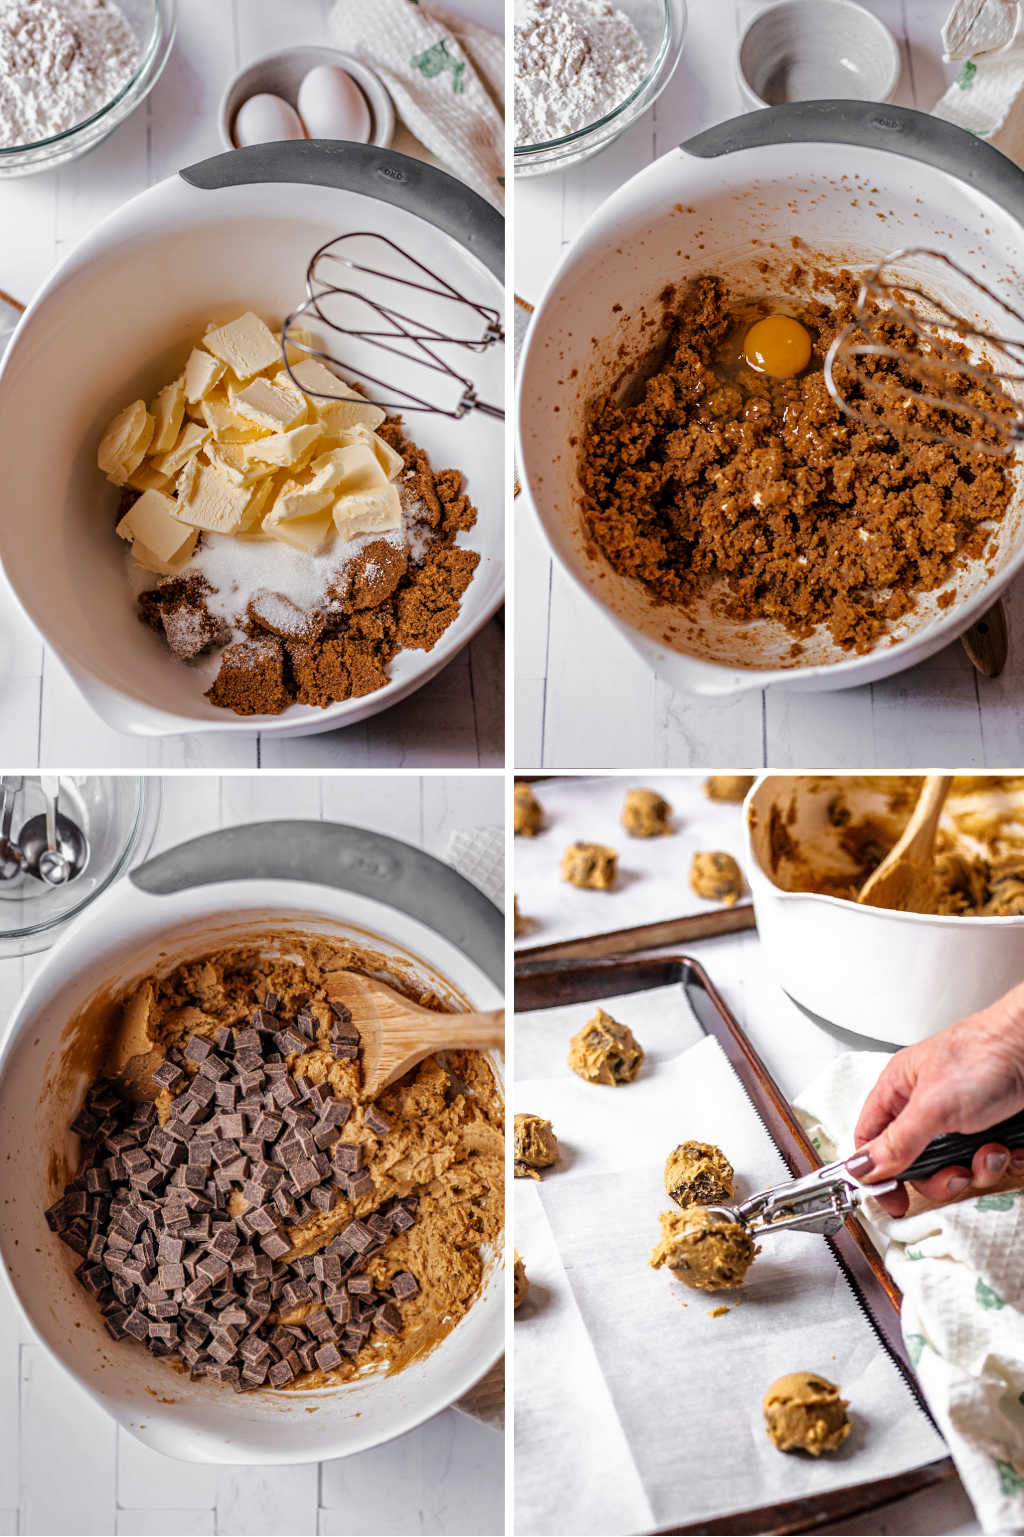 process steps for making chocolate chunk cookies.